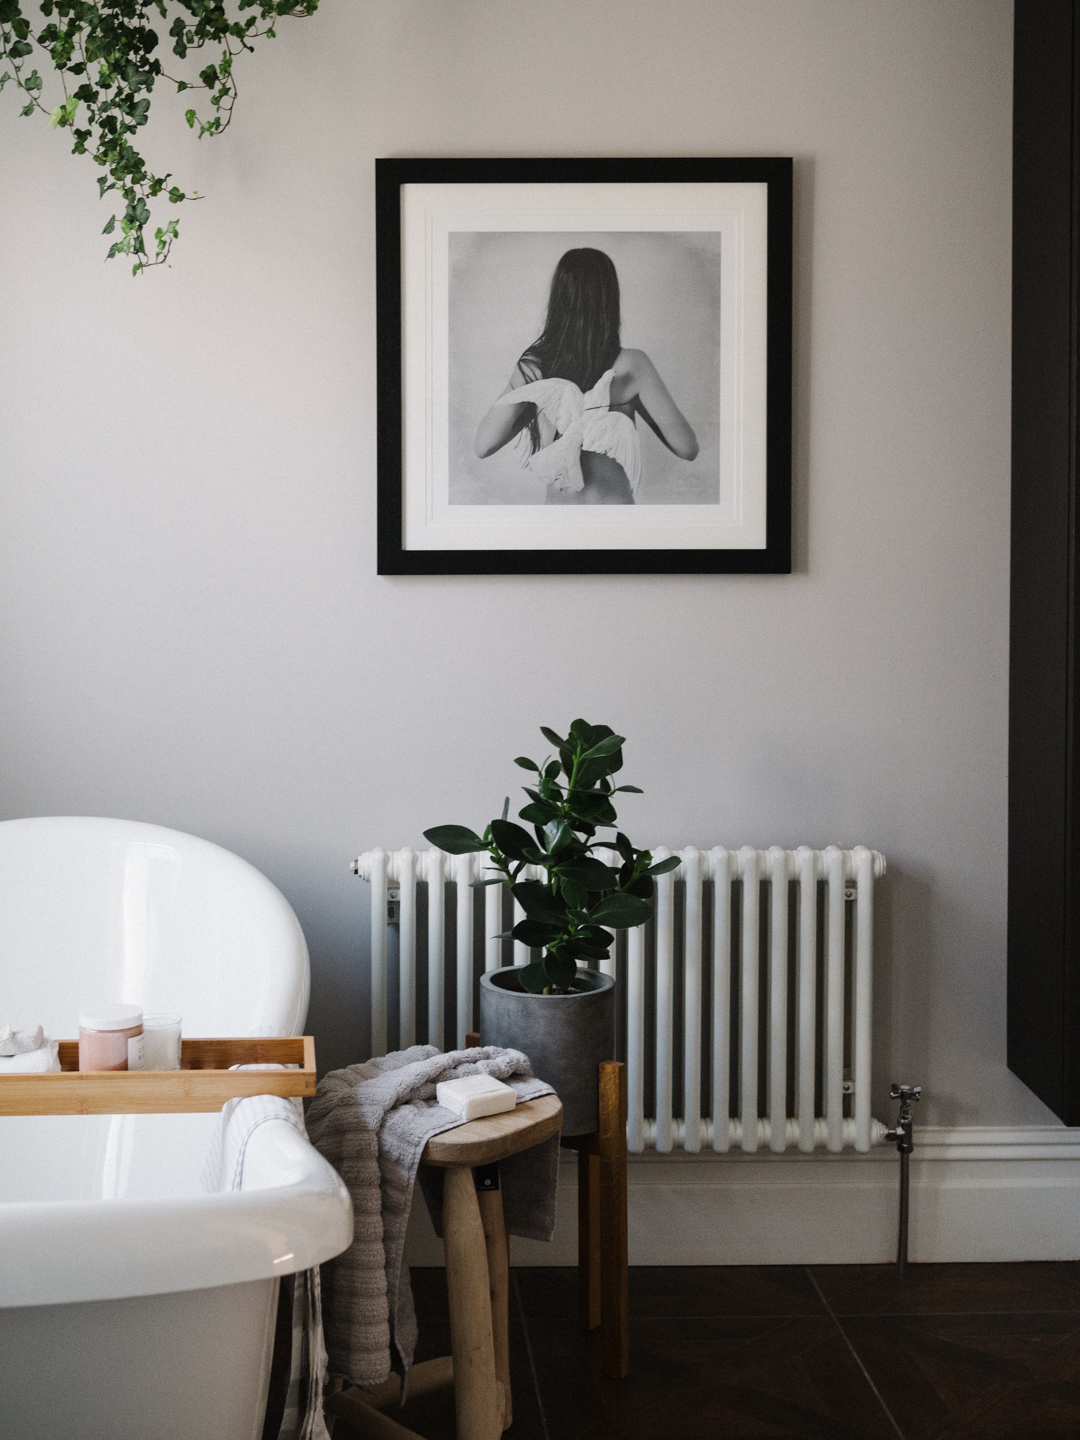 Updating my home with affordable art from Desenio (and 25% off for you)